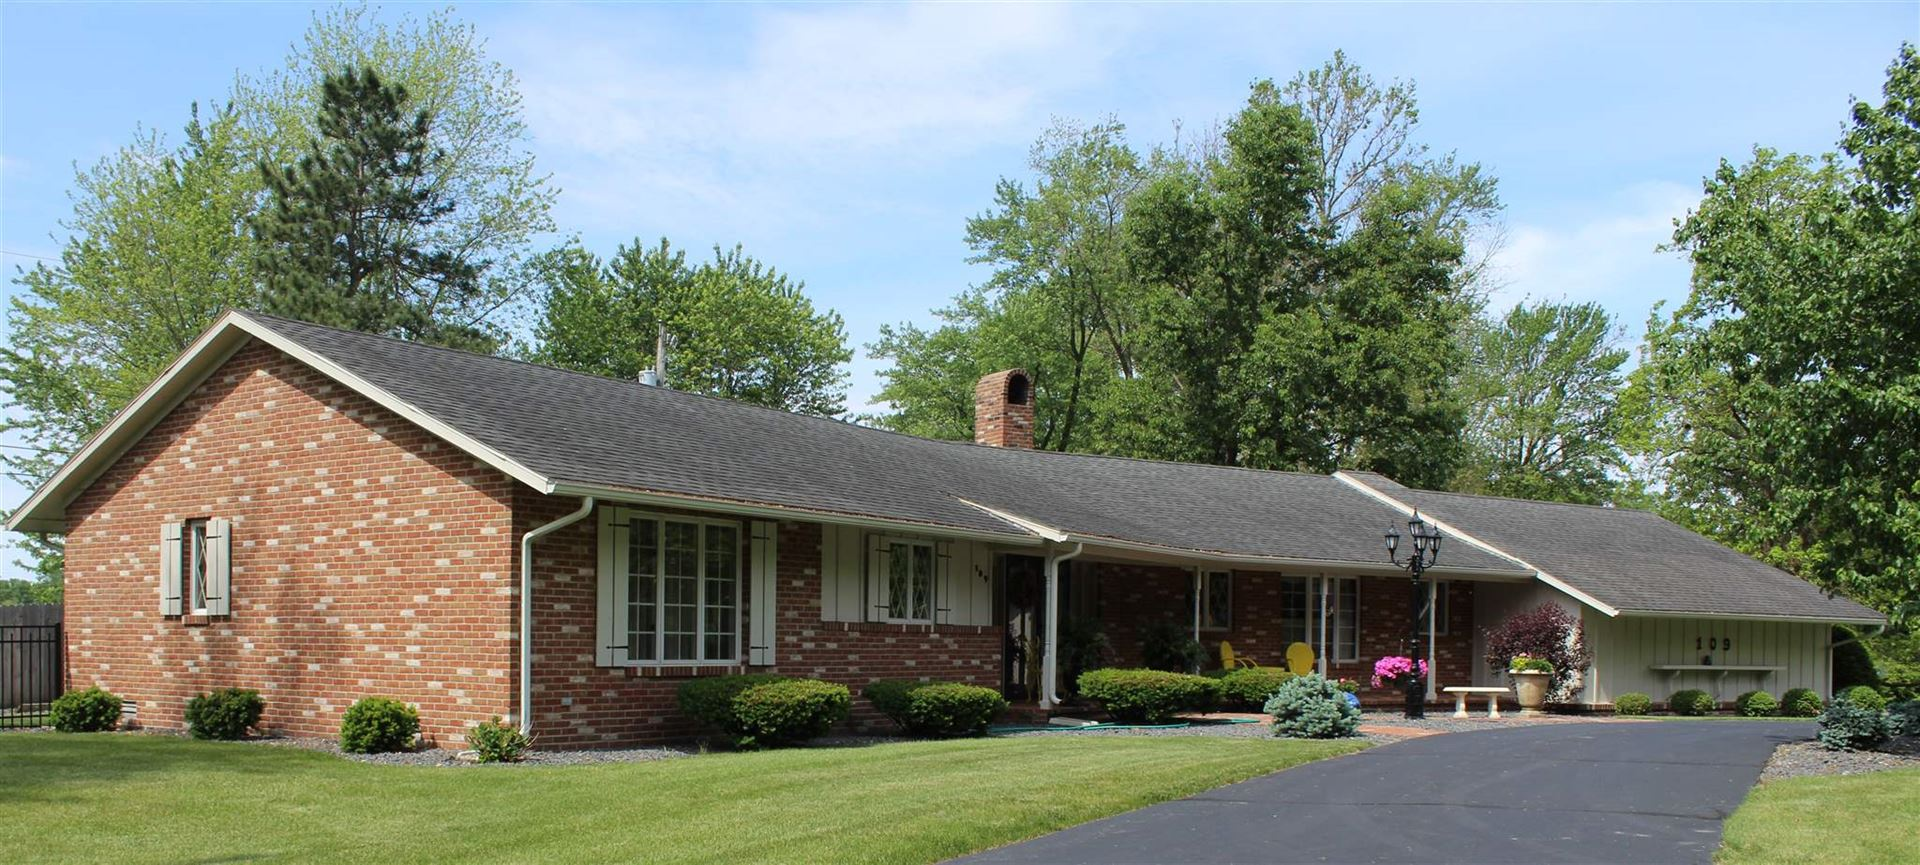 109 Crestwood Drive, Monticello, IN 47960 - #: 202021074